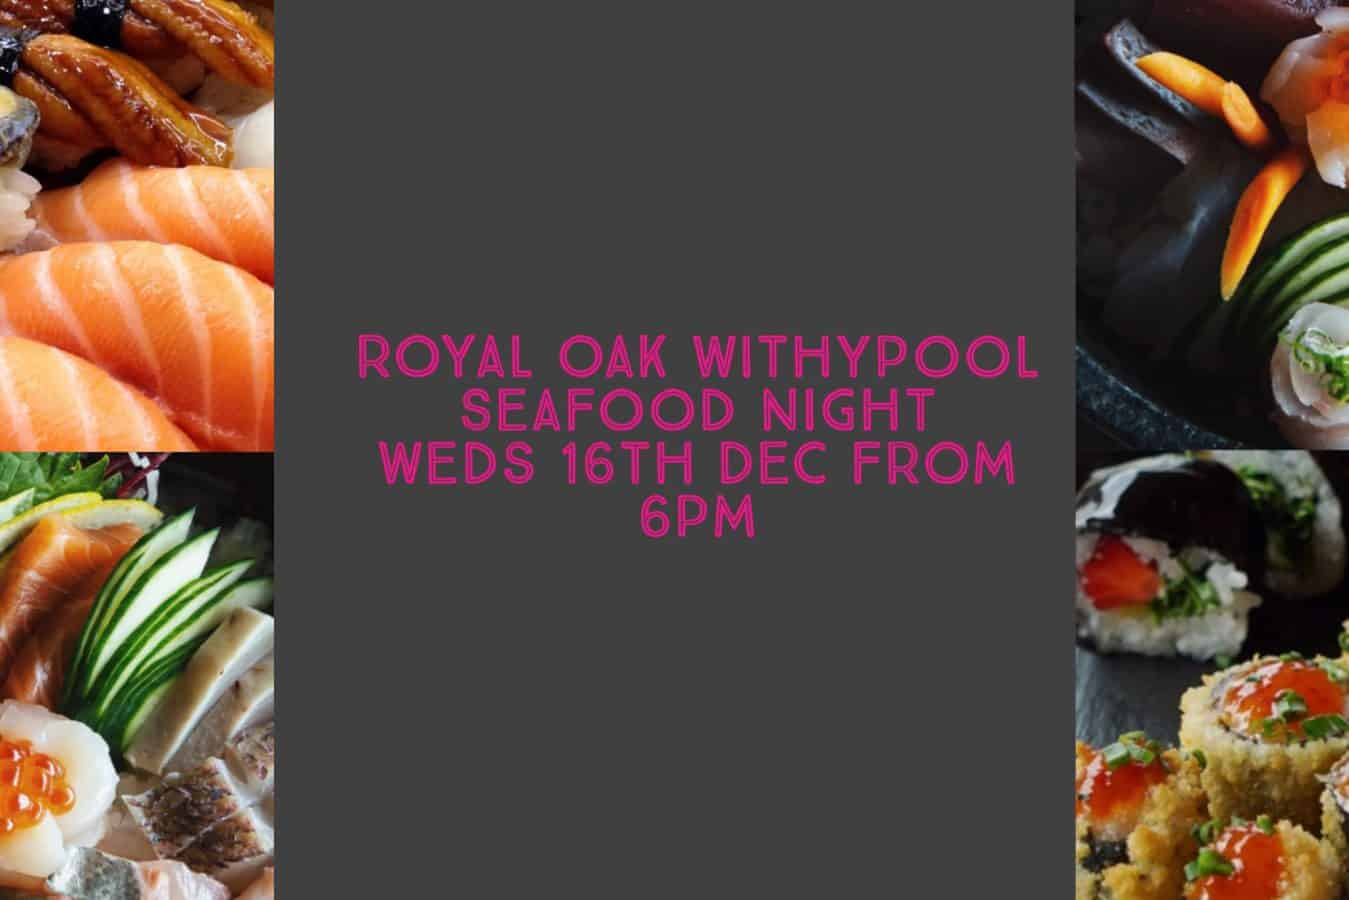 Seafood Night at The Royal Oak Inn Withypool